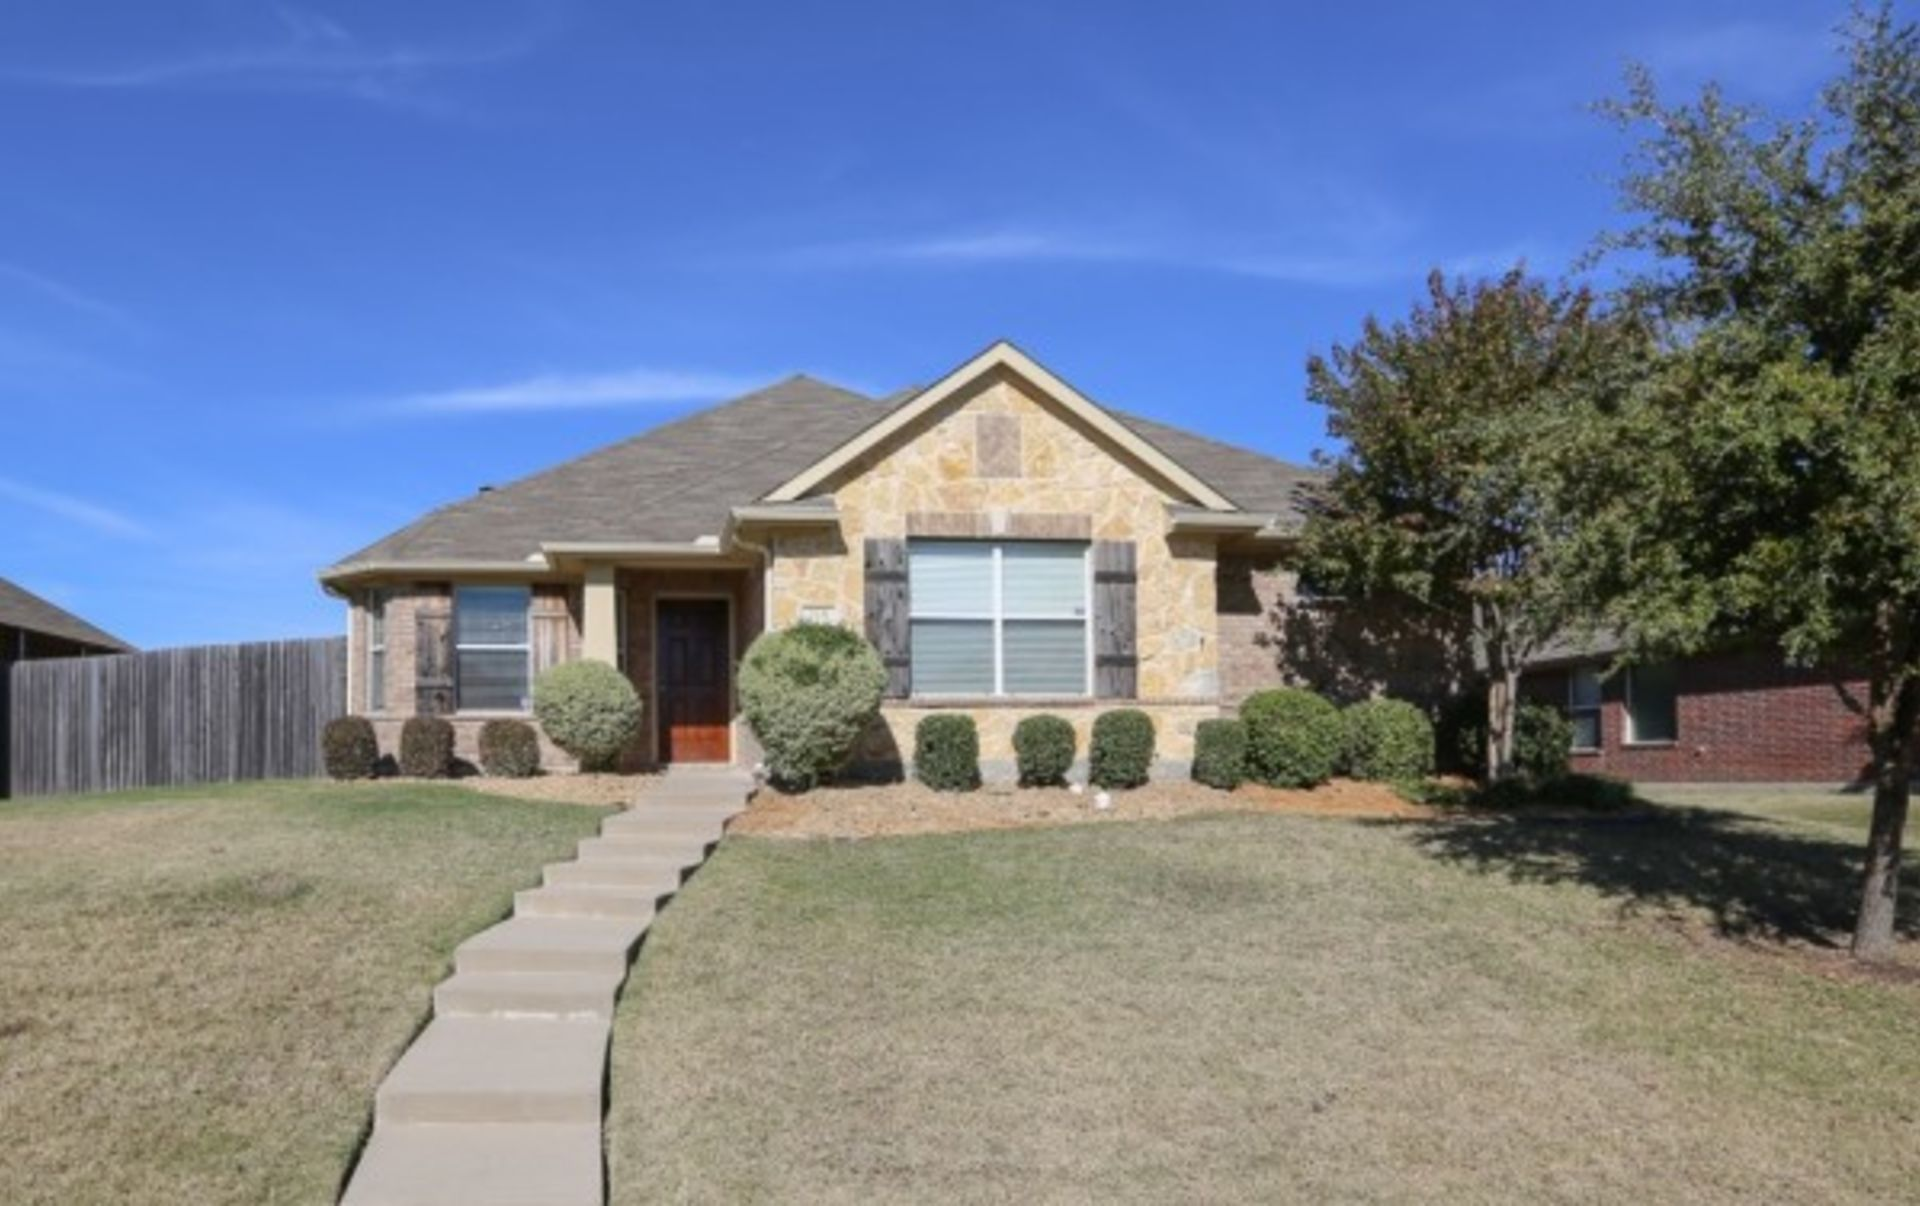 HOME FOR SALE IN WYLIE TX 75098 – 219 ROCKBROOK DR